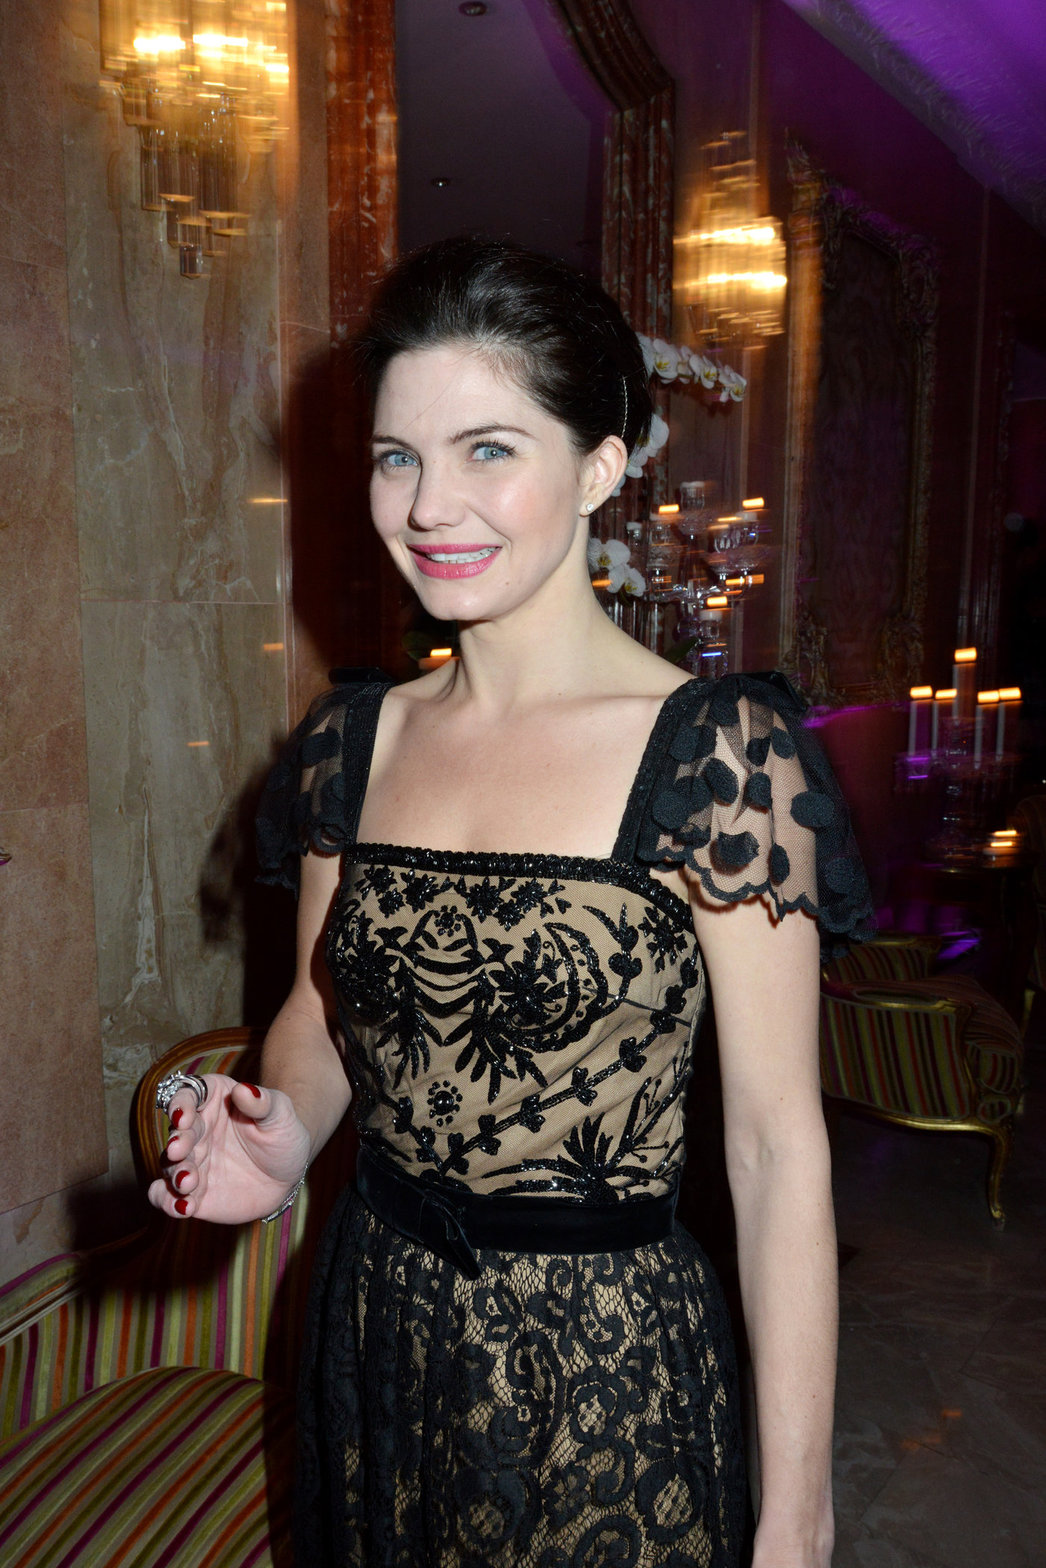 Delphine Chaneac The Bests Awards 2012 Ceremony in Paris (Dec 11, 2012)